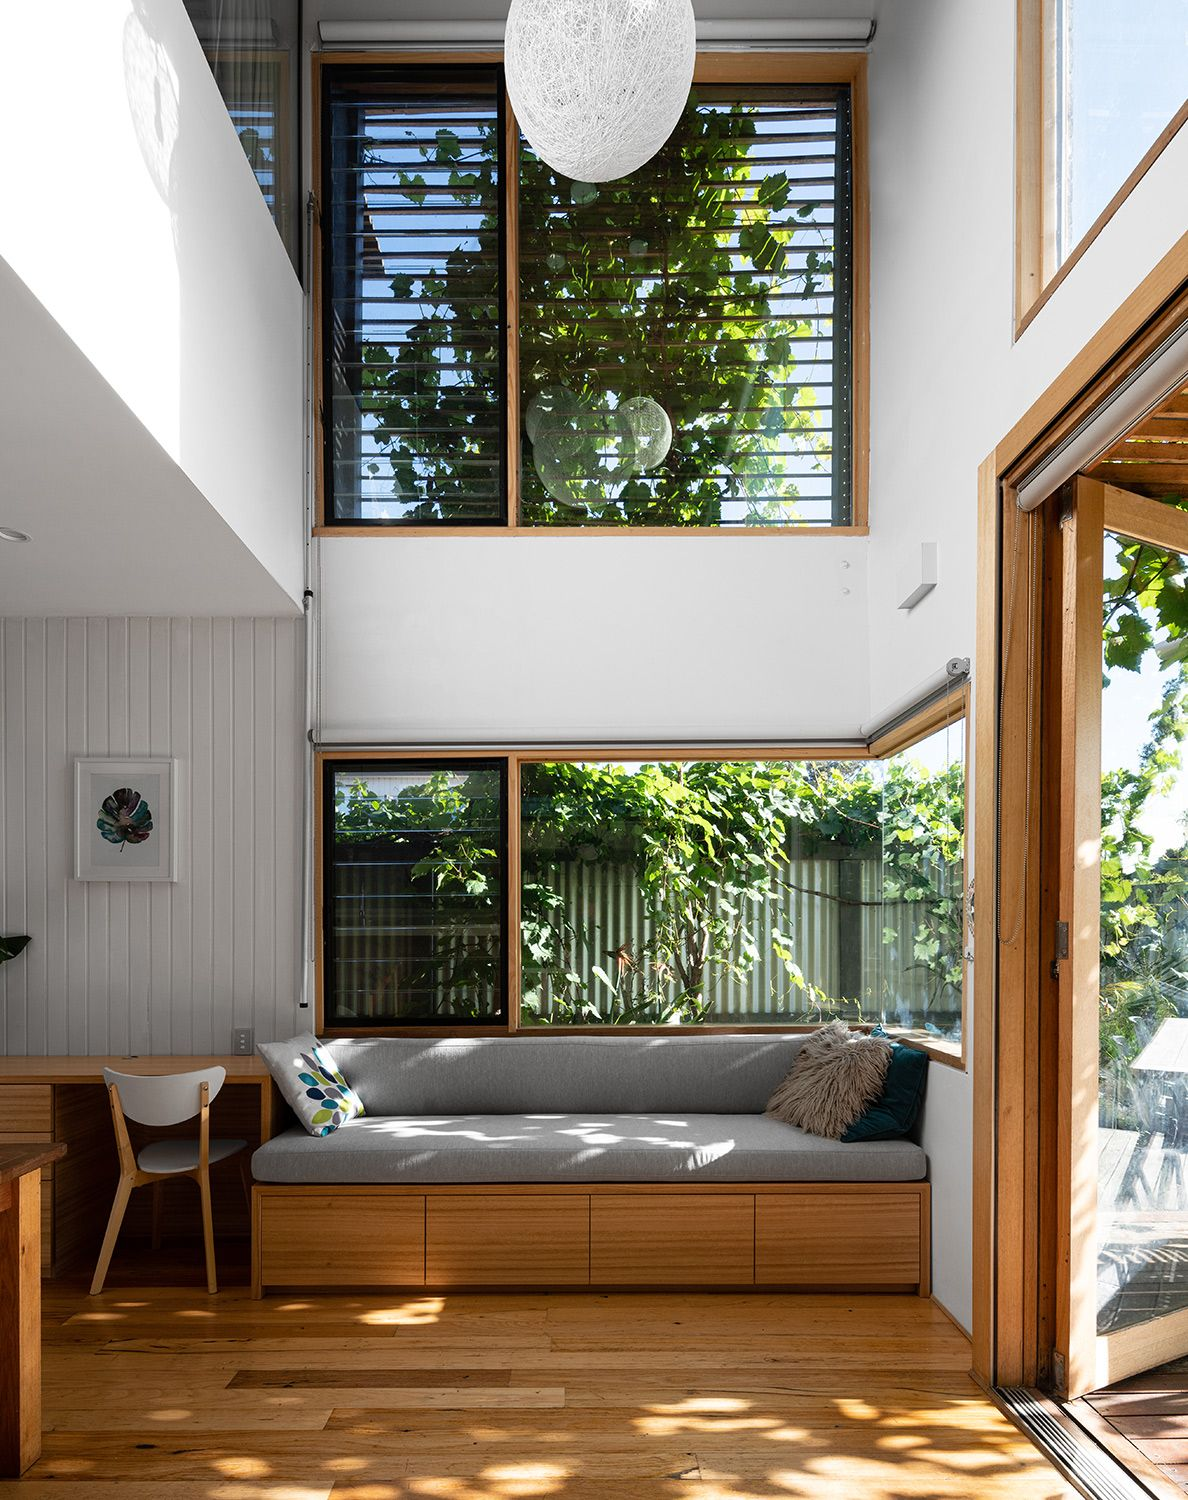 https://www.bencallery.com.au/wp-content/uploads/2015/05/42_-Callery-House-Ben-Callery-Architects-high-res-02.jpg